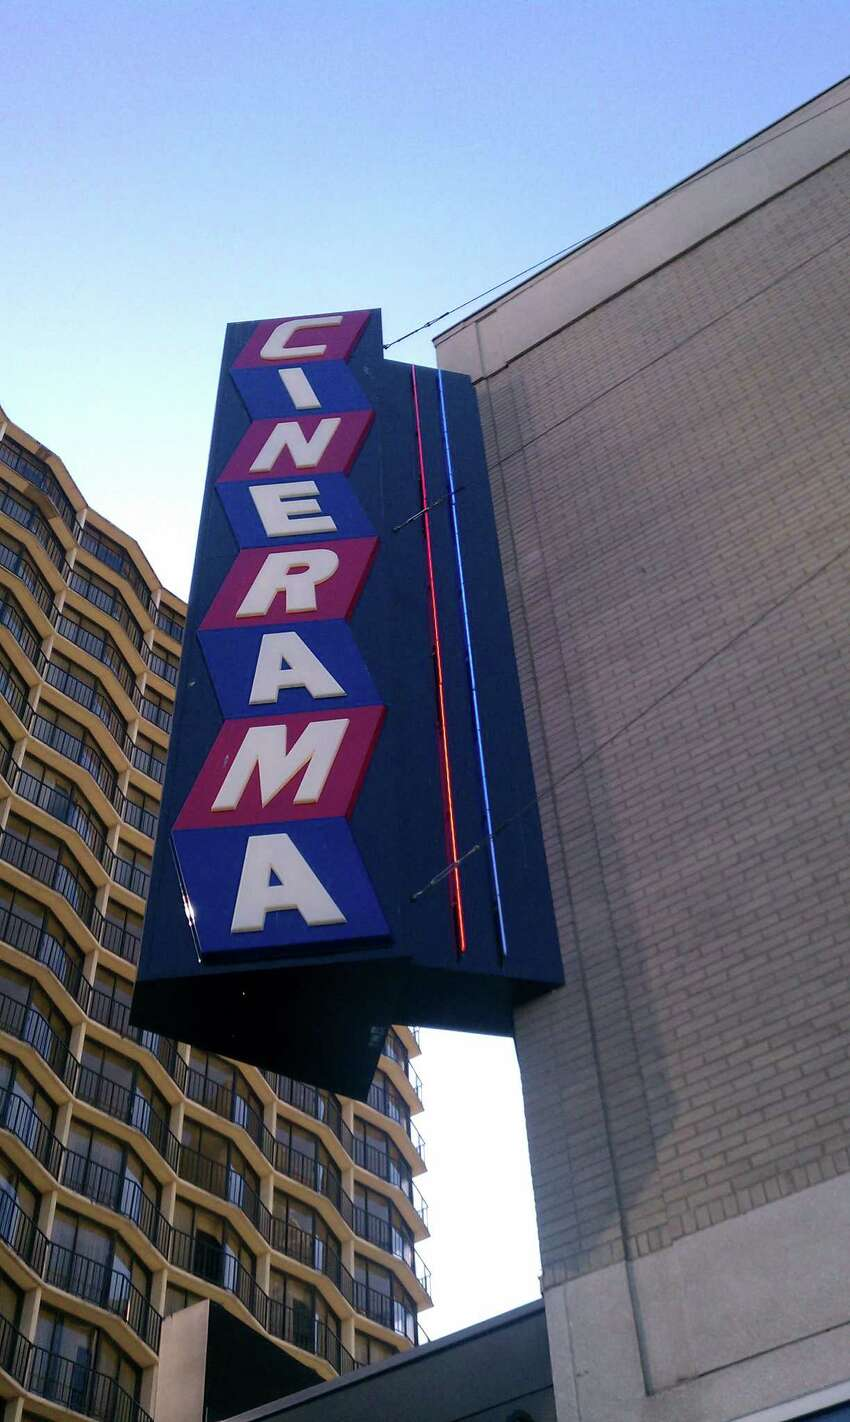 The Cinerama has one of the coolest marquees in Seattle.